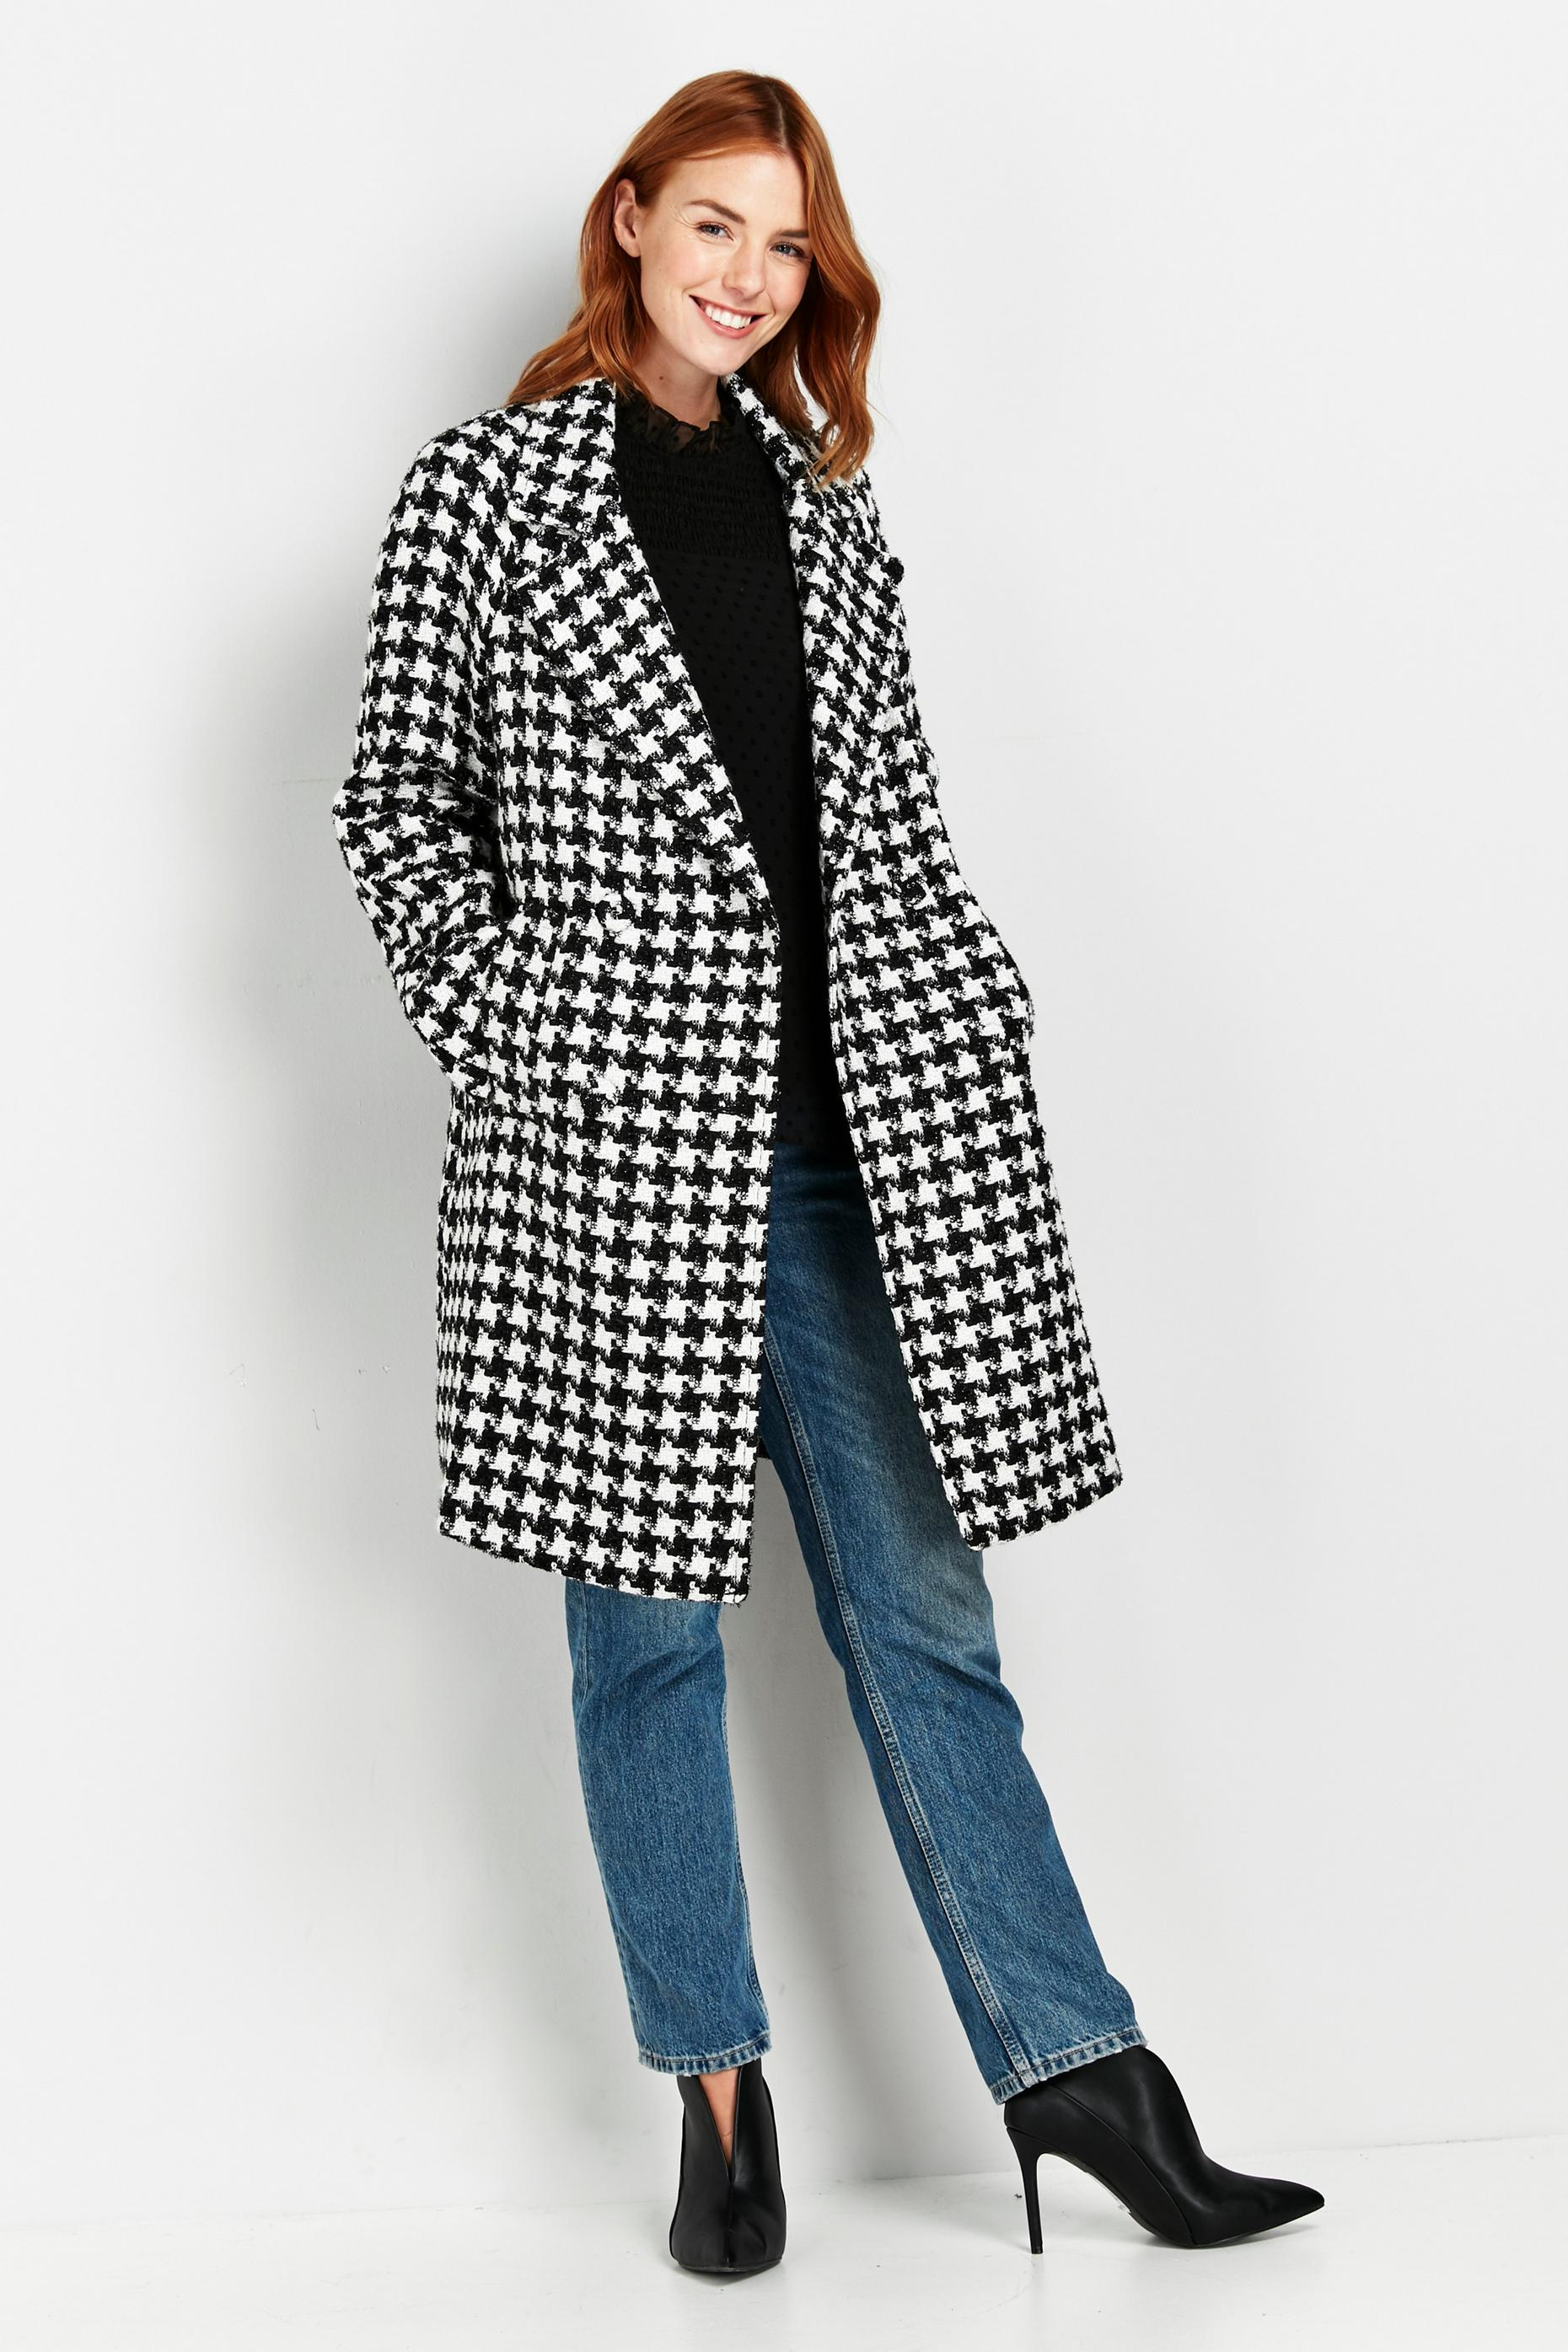 Monochrome Check Print Coat